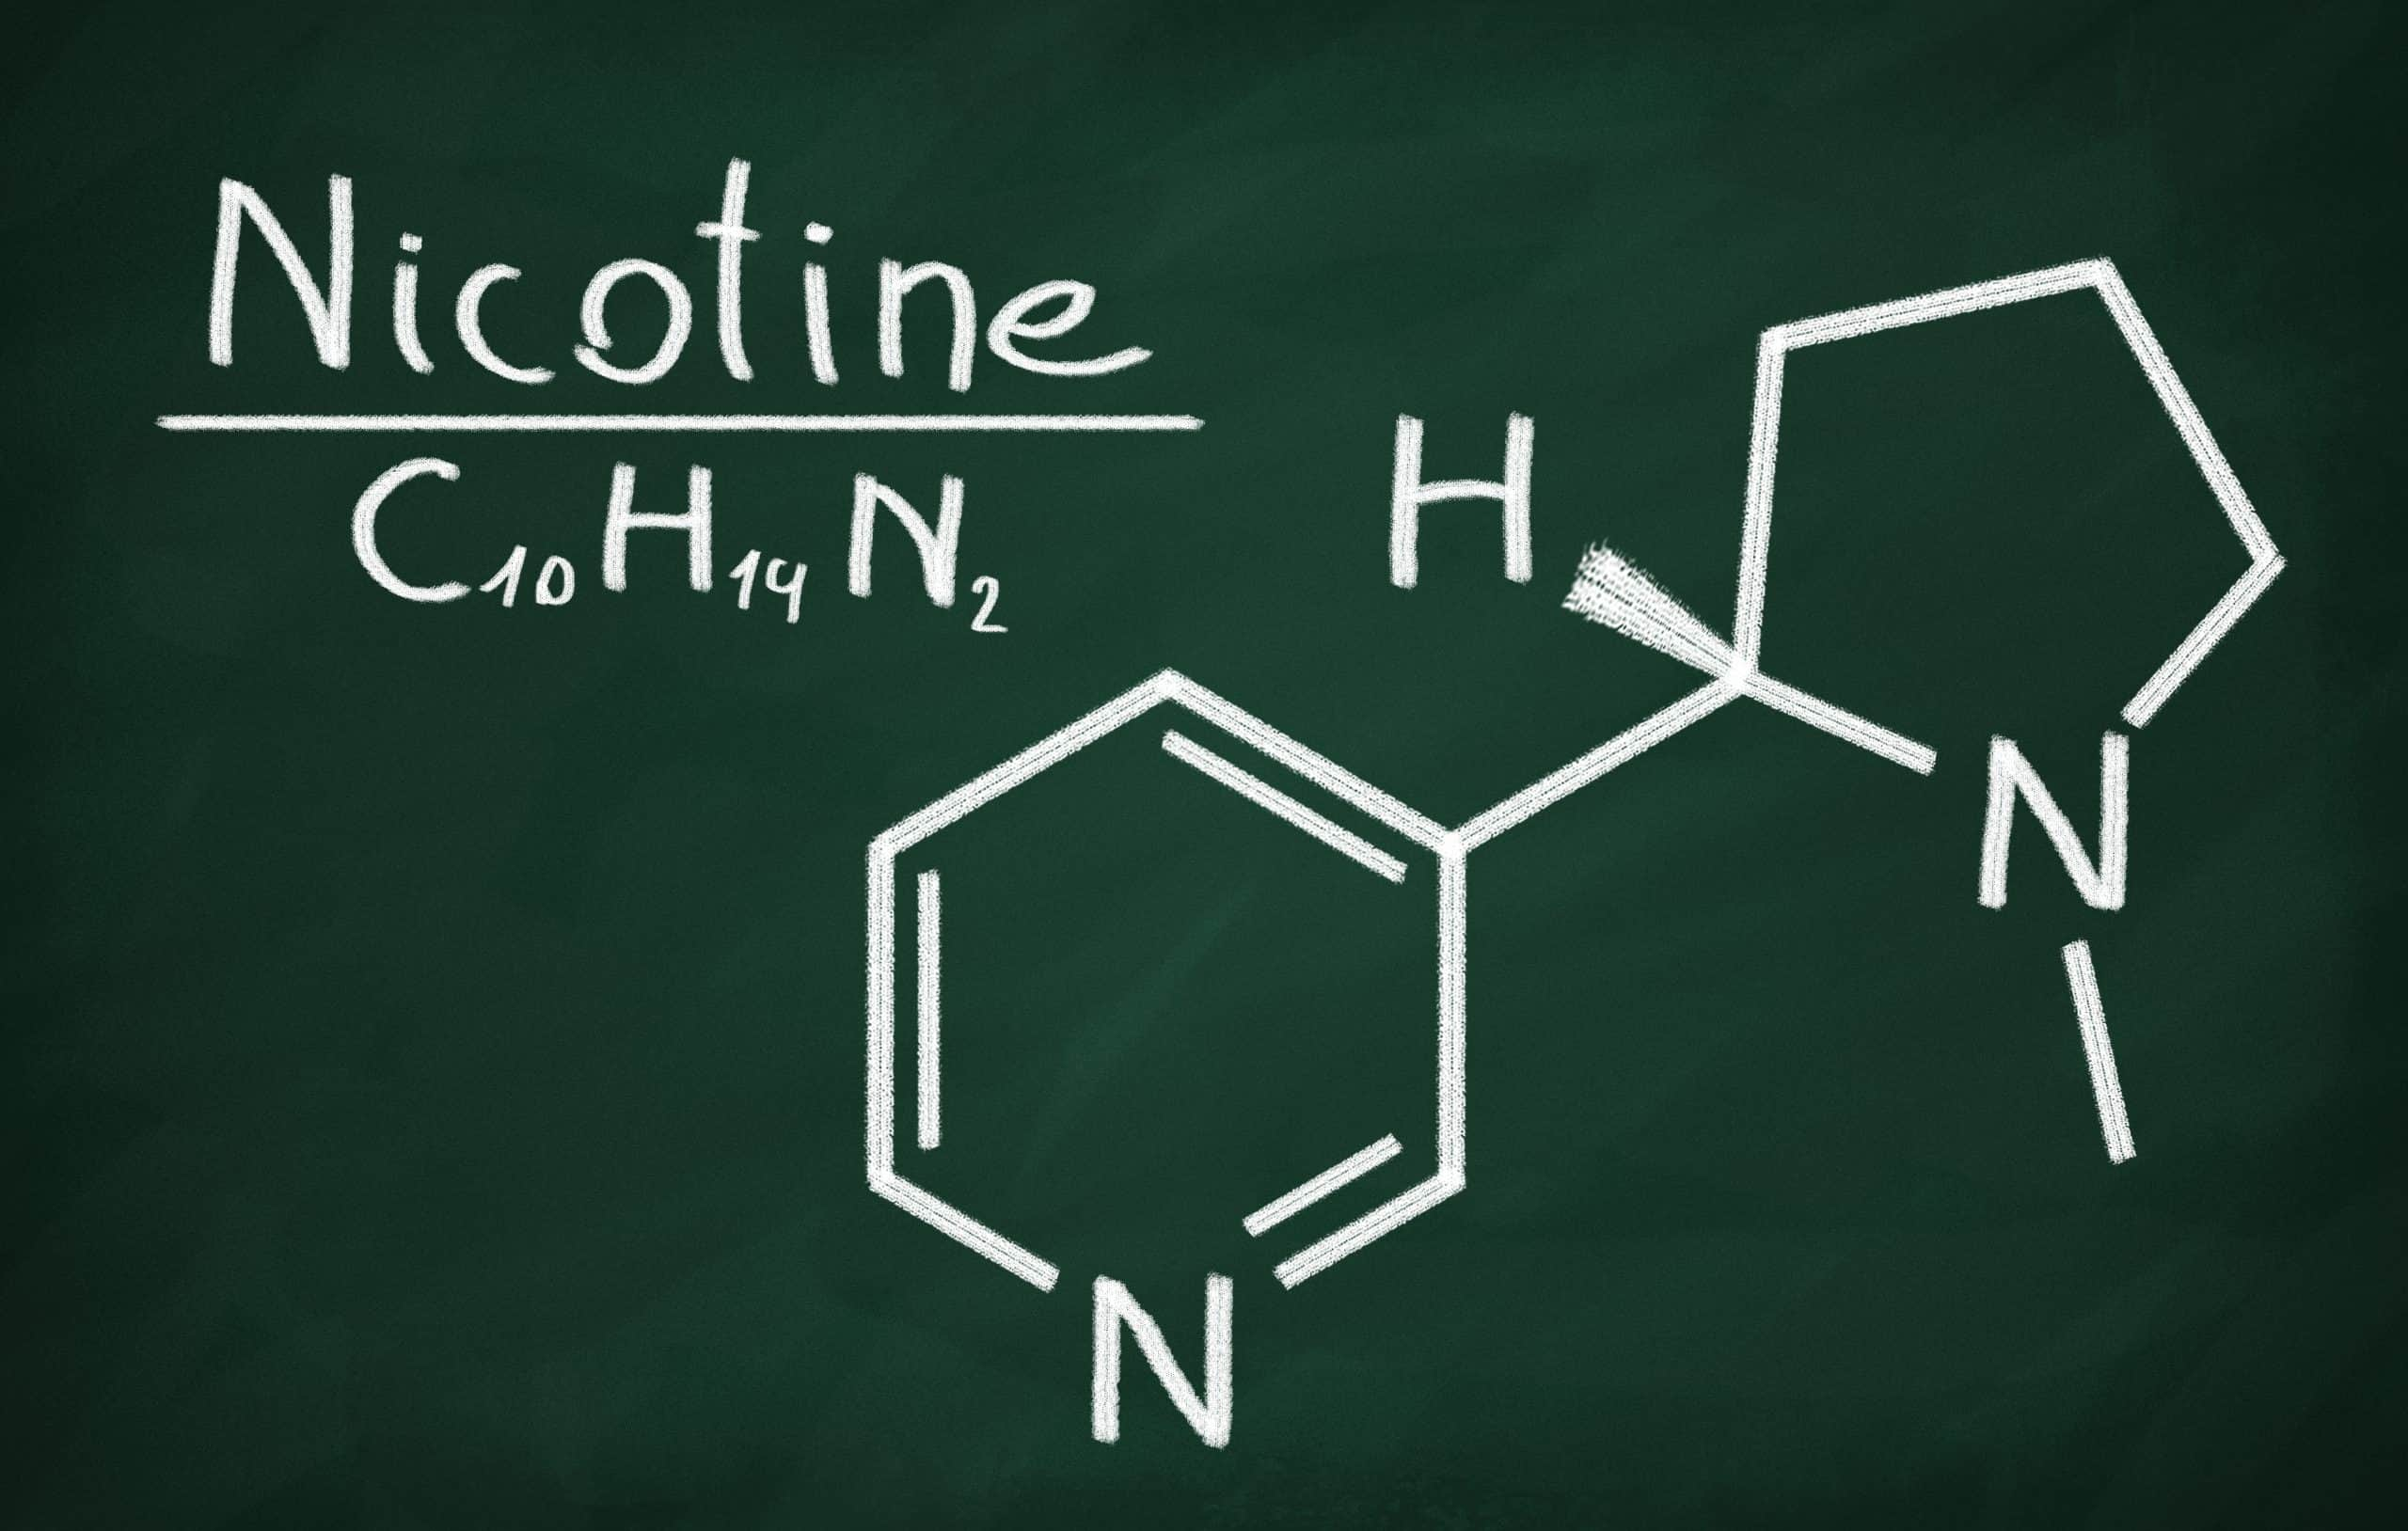 Structural model of Nicotine on the blackboard.